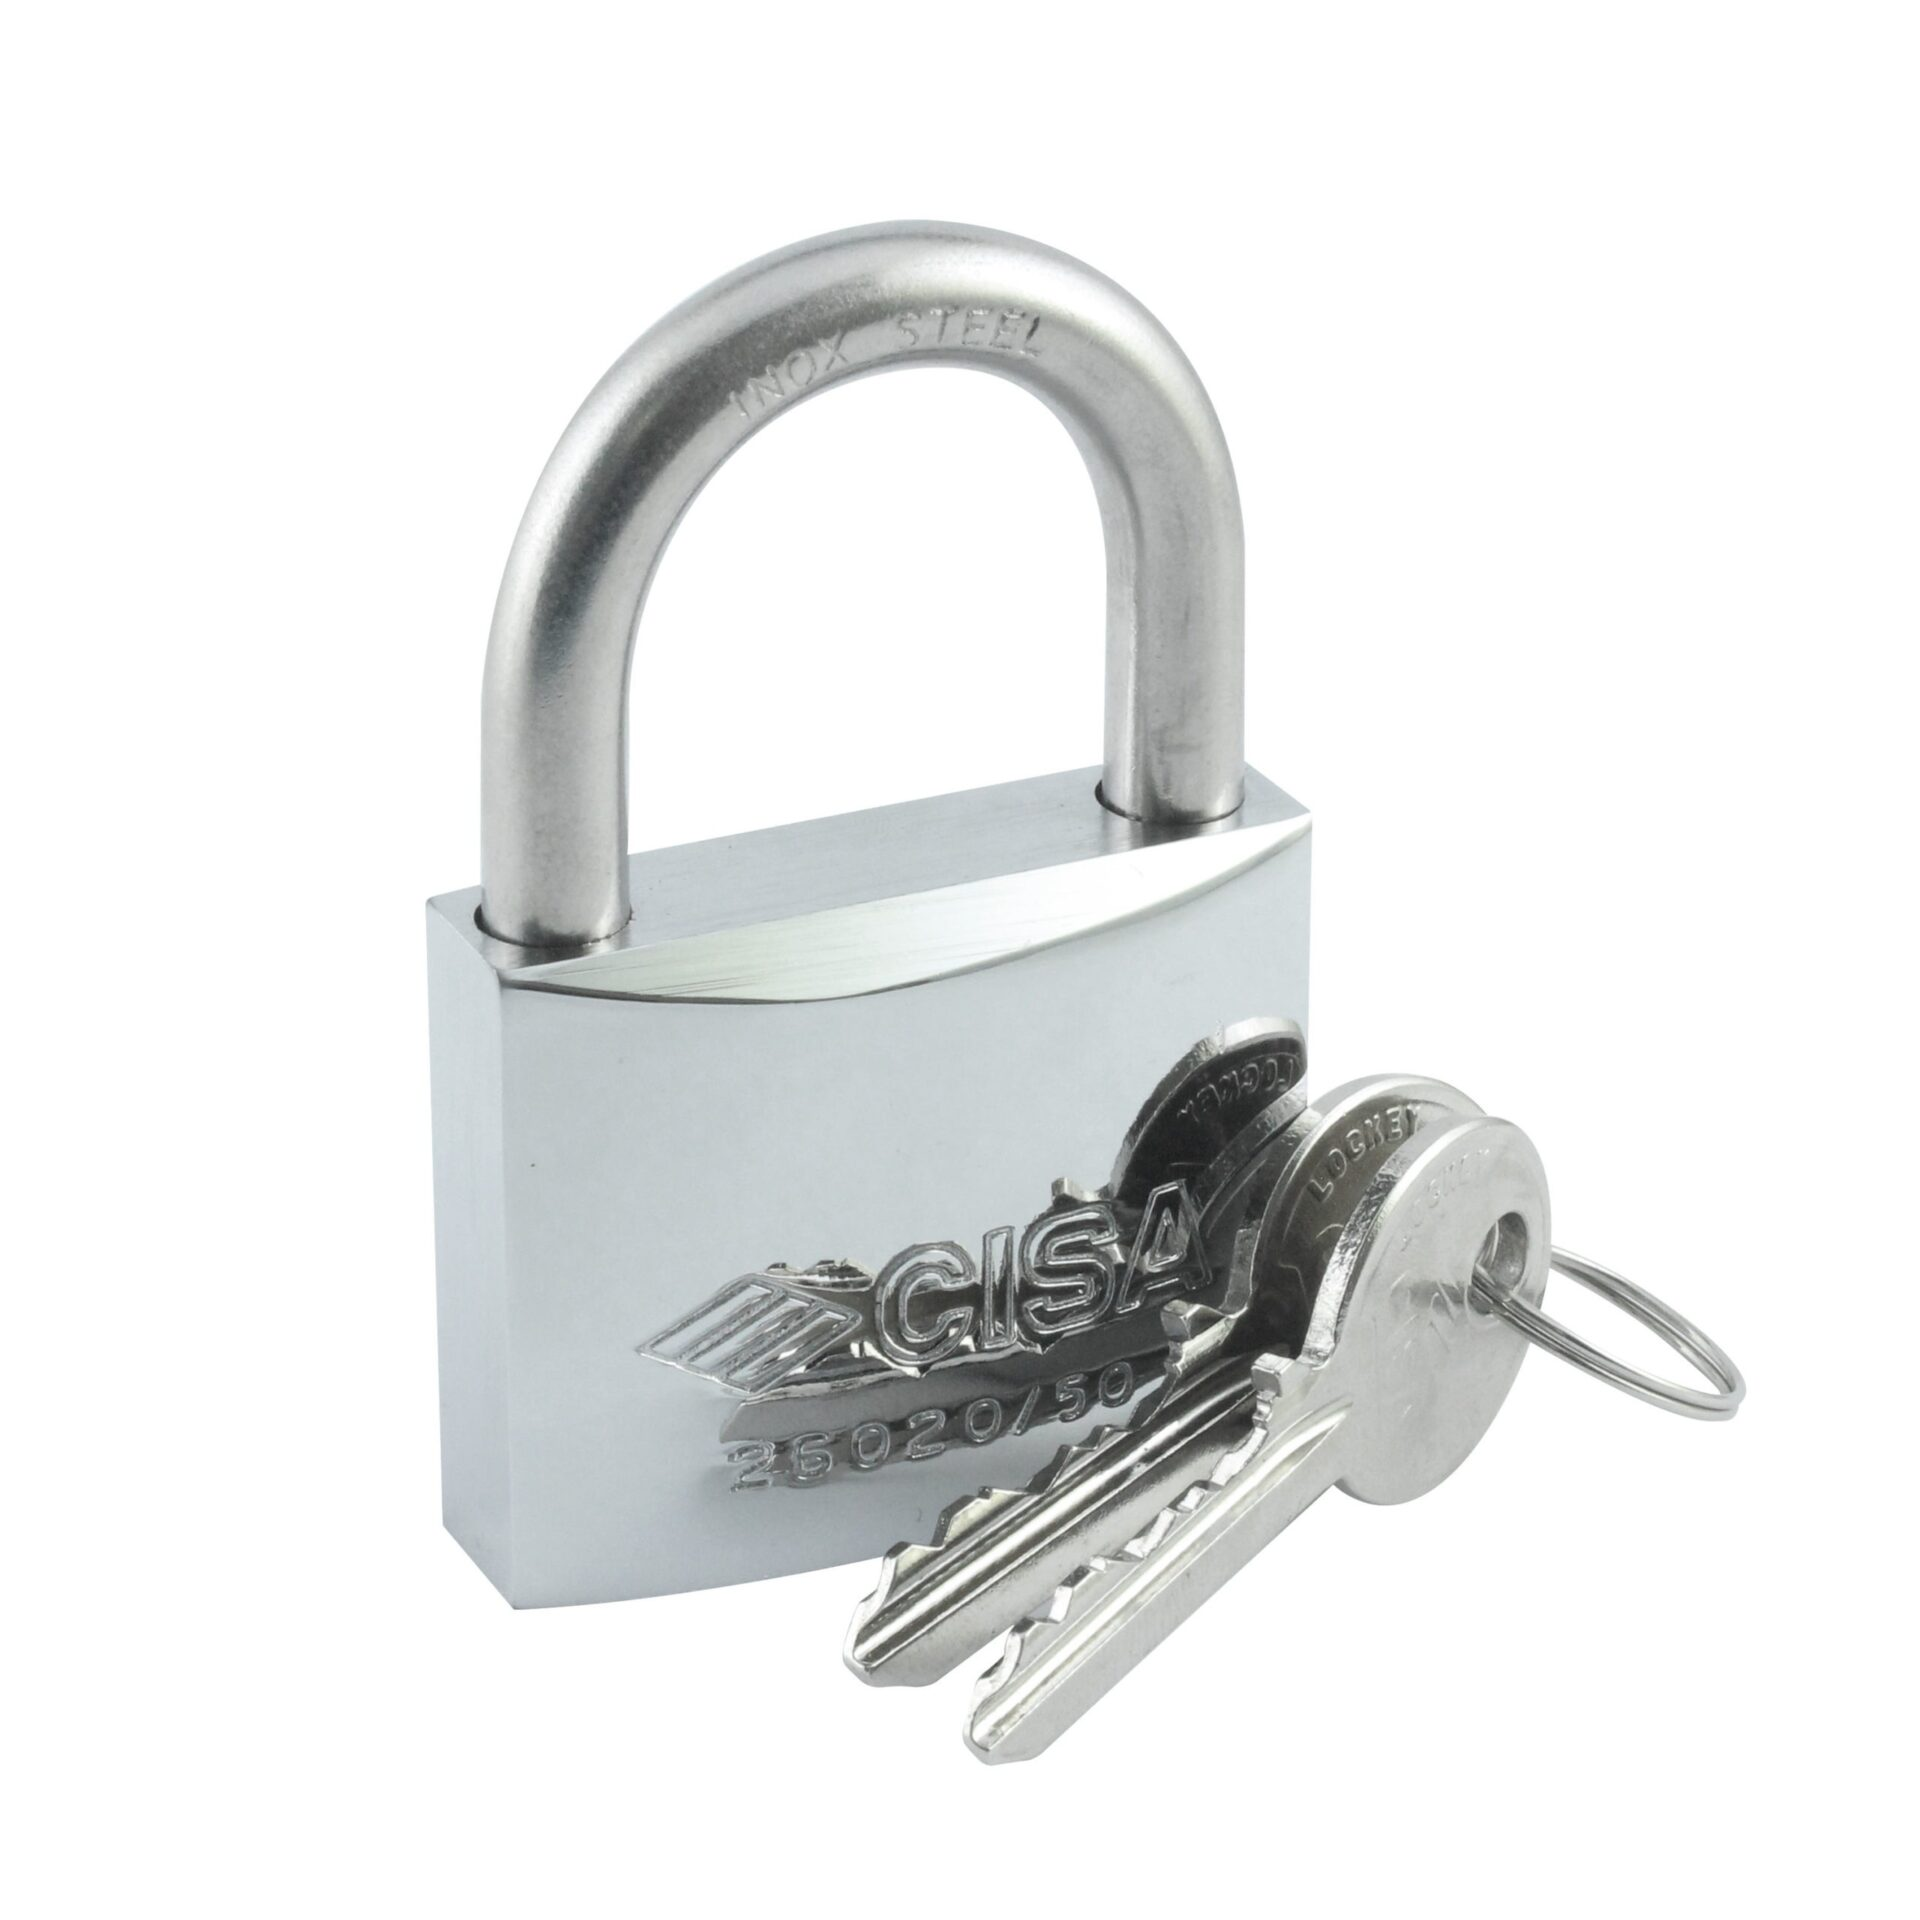 Heavy Duty Weatherproof Shackle Chromed Padlock 1-31/32″ (50 mm)